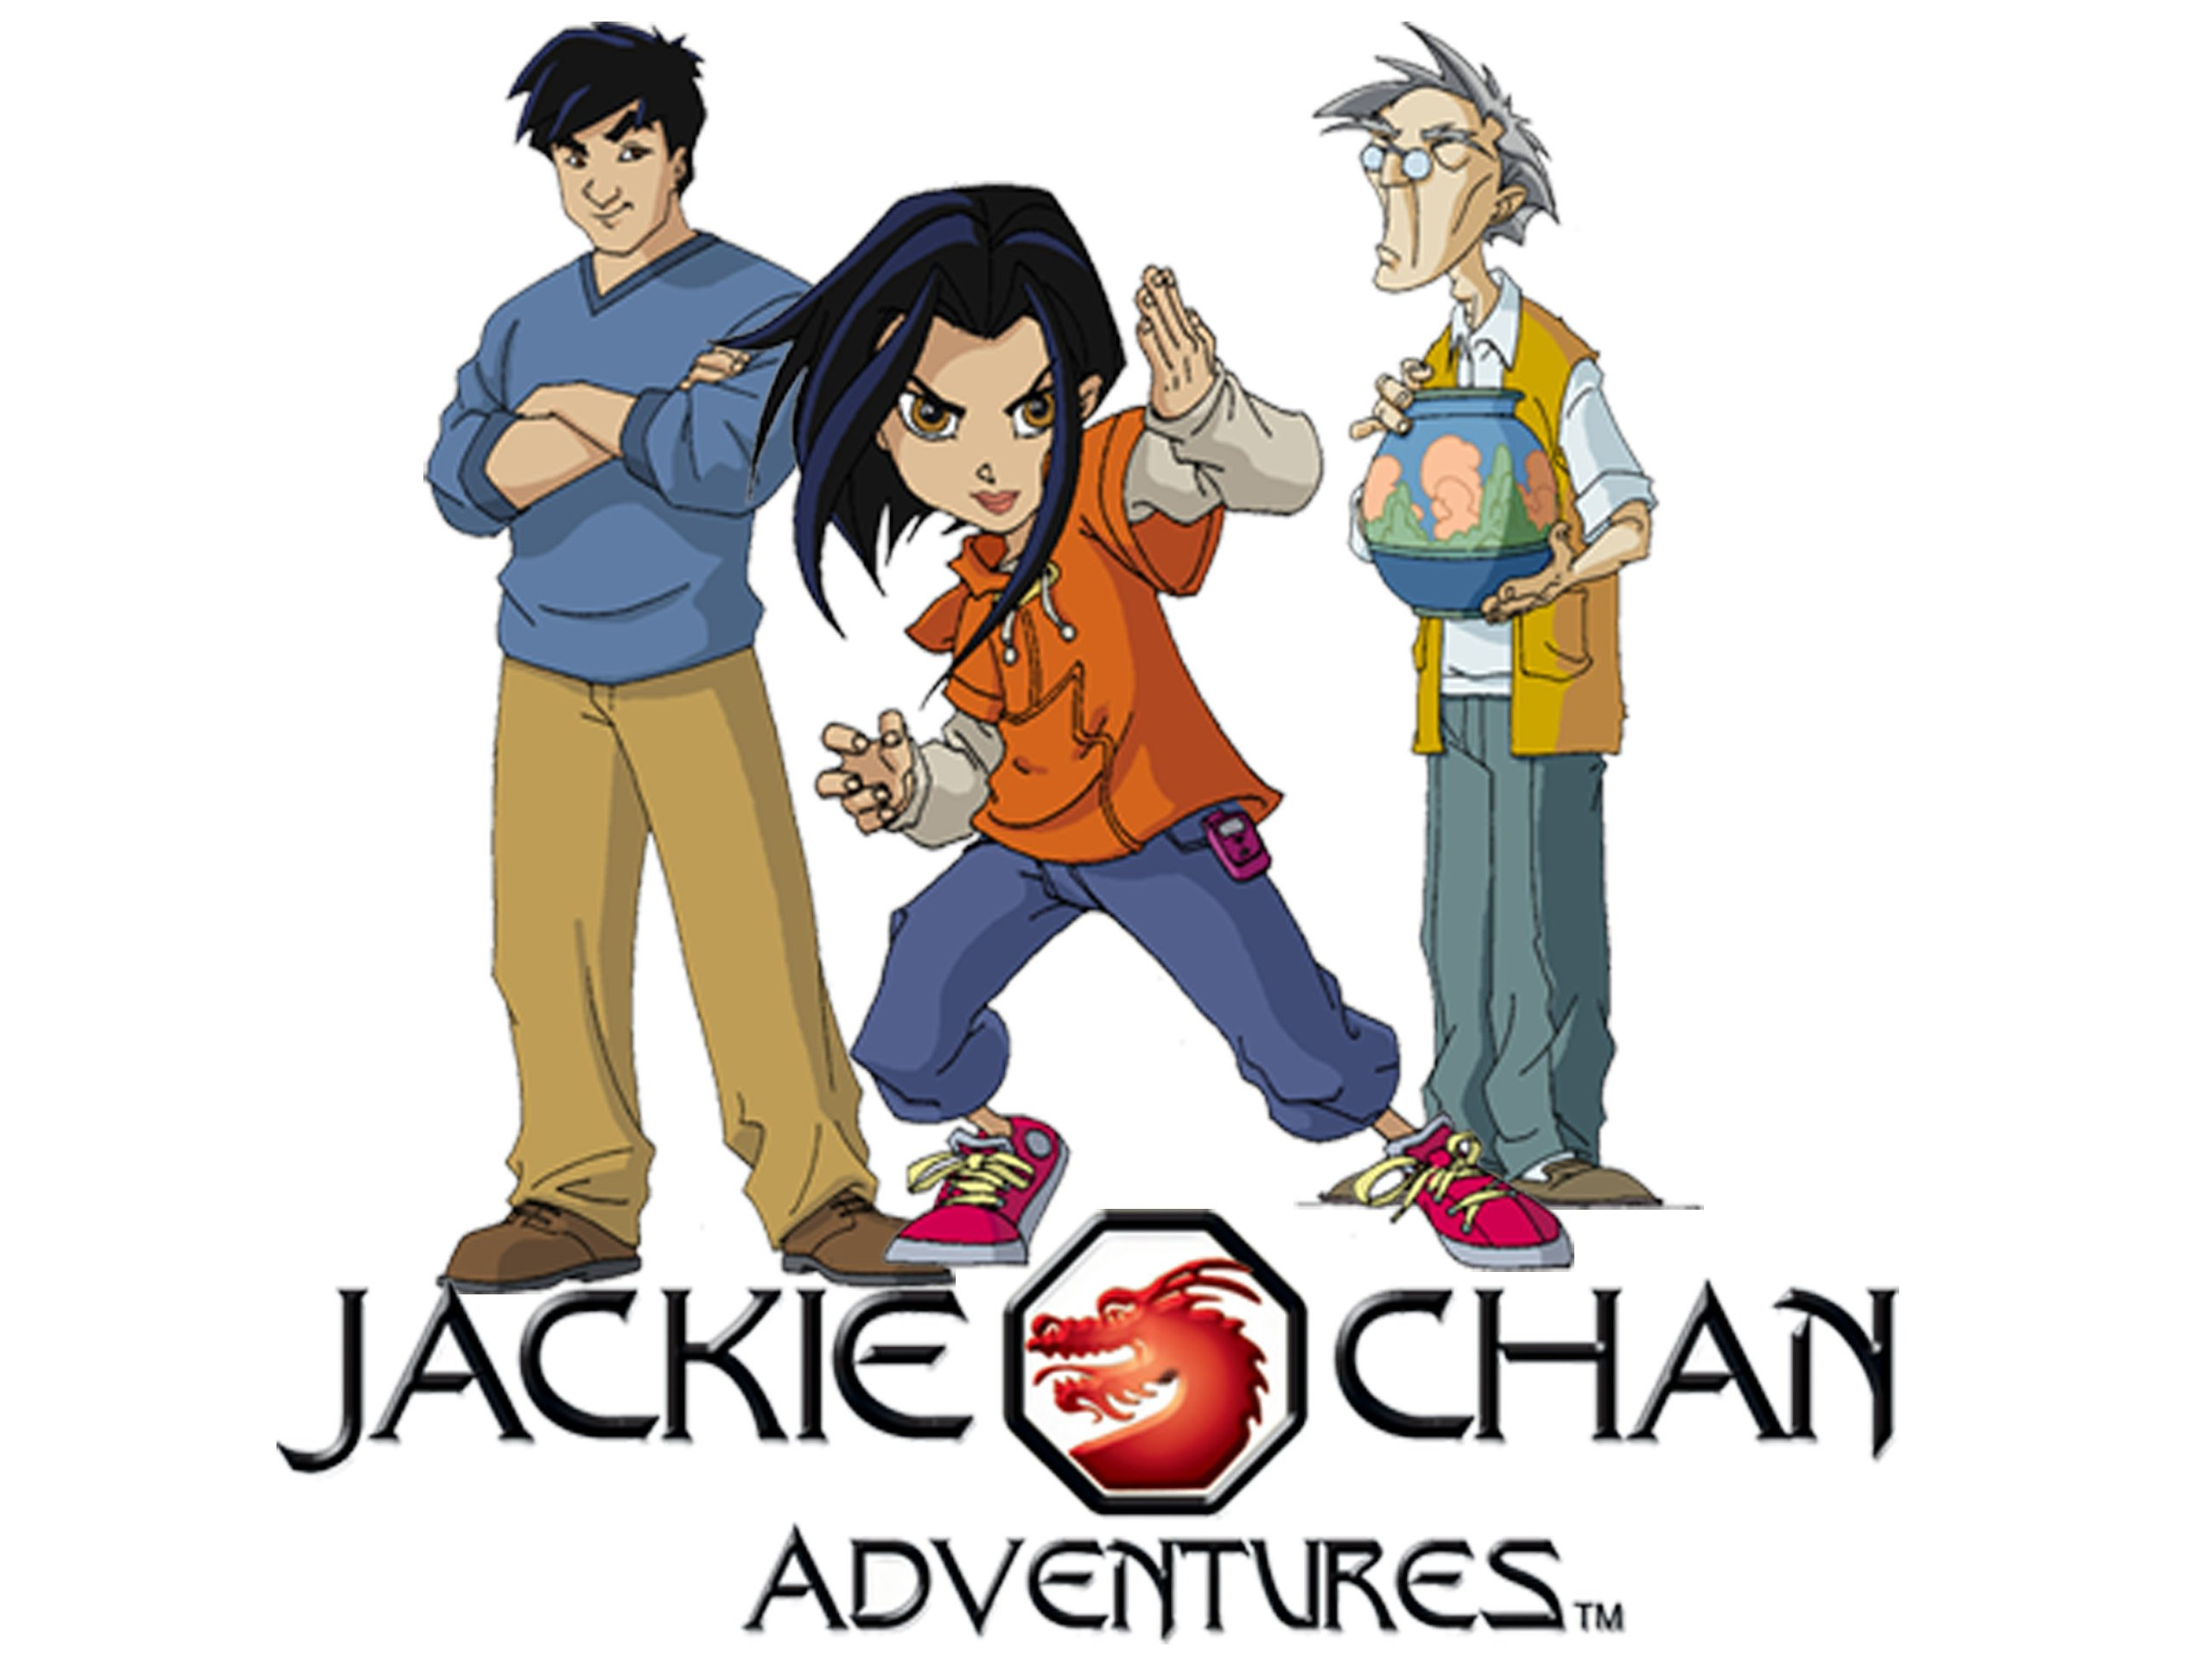 Amazon clipartlook.com: Jackie Chan Adve-Amazon clipartlook.com: Jackie Chan Adventures Season 1: Christopher Berkeley, Michael  Chang, Andy Thom, Seung Kim, Phil Weinstein, Jackie Chan, Willie Chan, ClipartLook.com -17